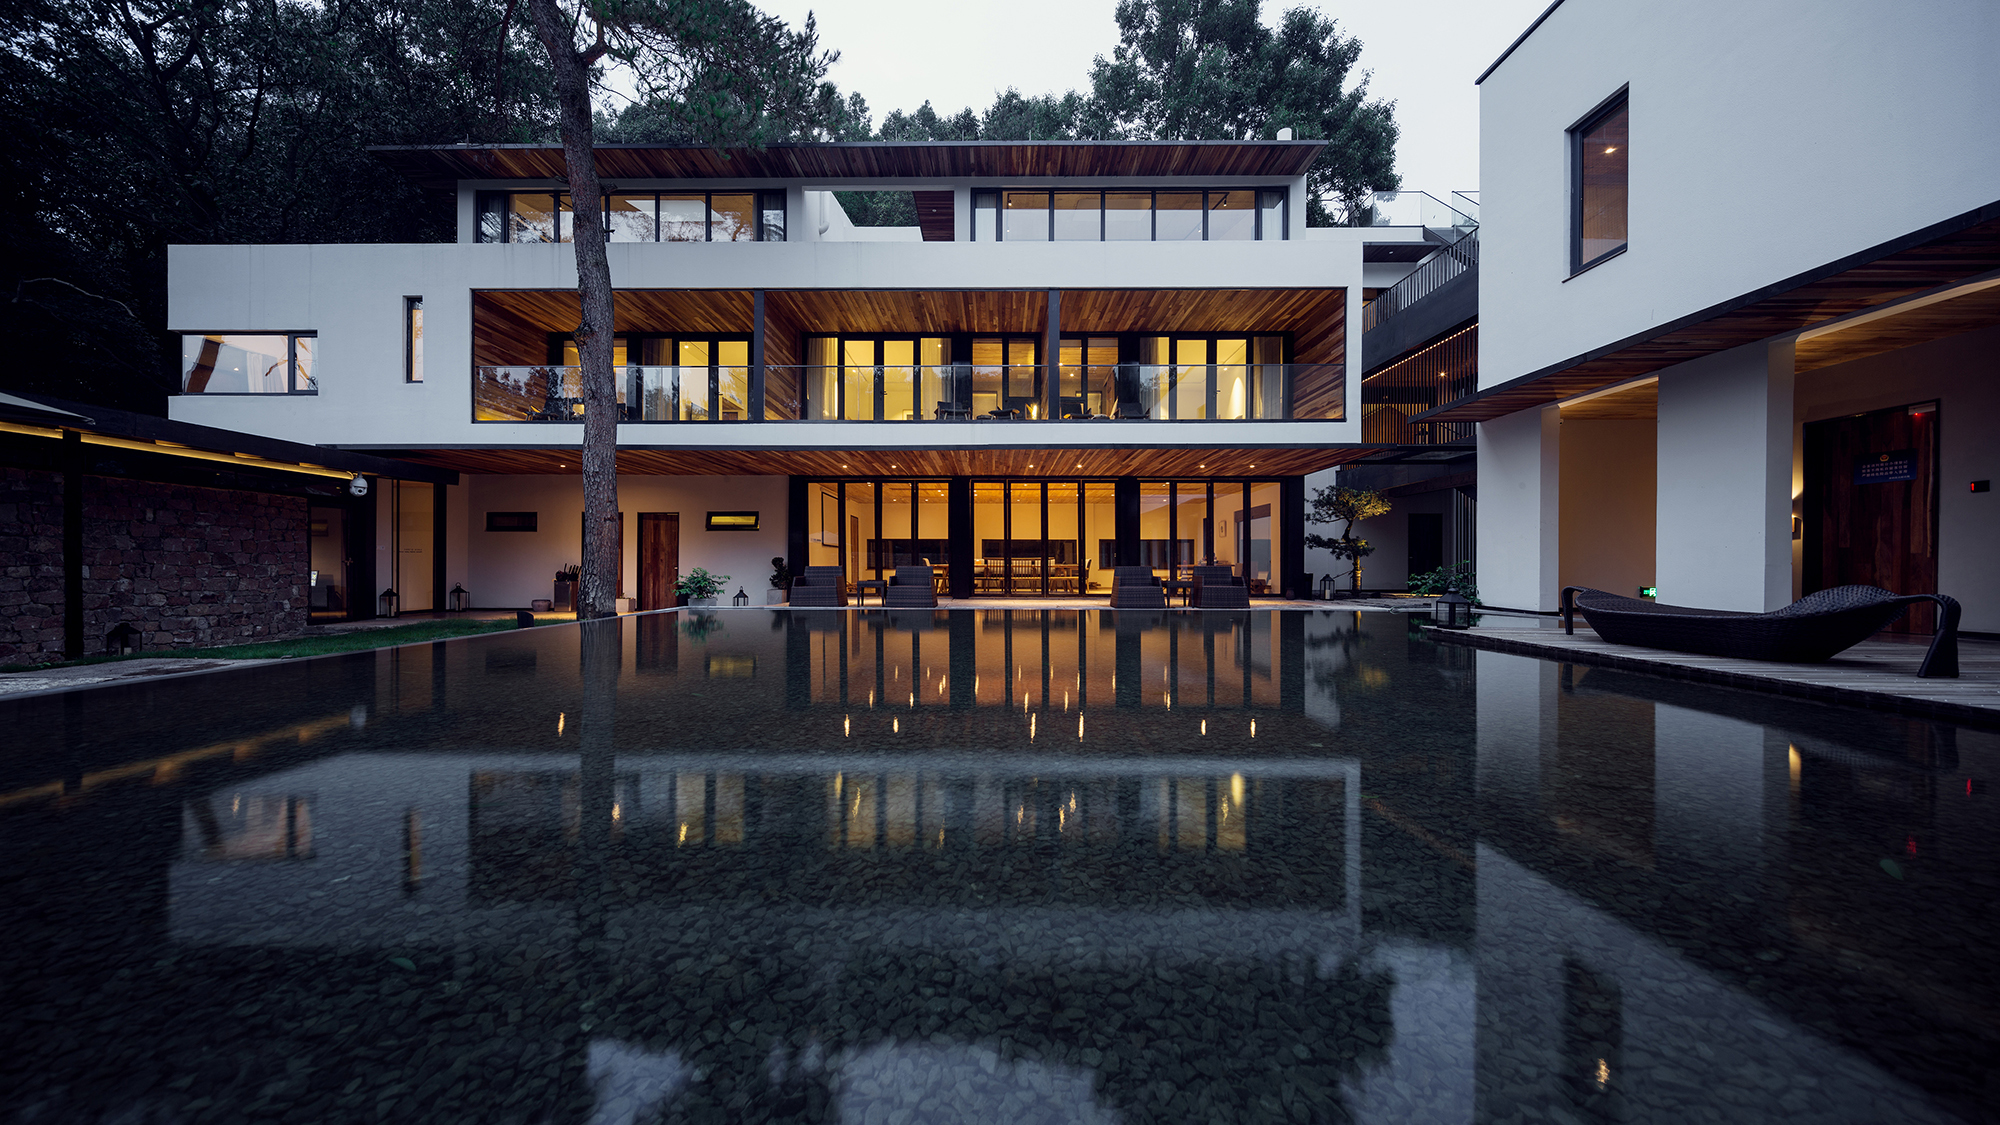 Jingshan boutique hotel continuation studio archdaily for The boutique hotel